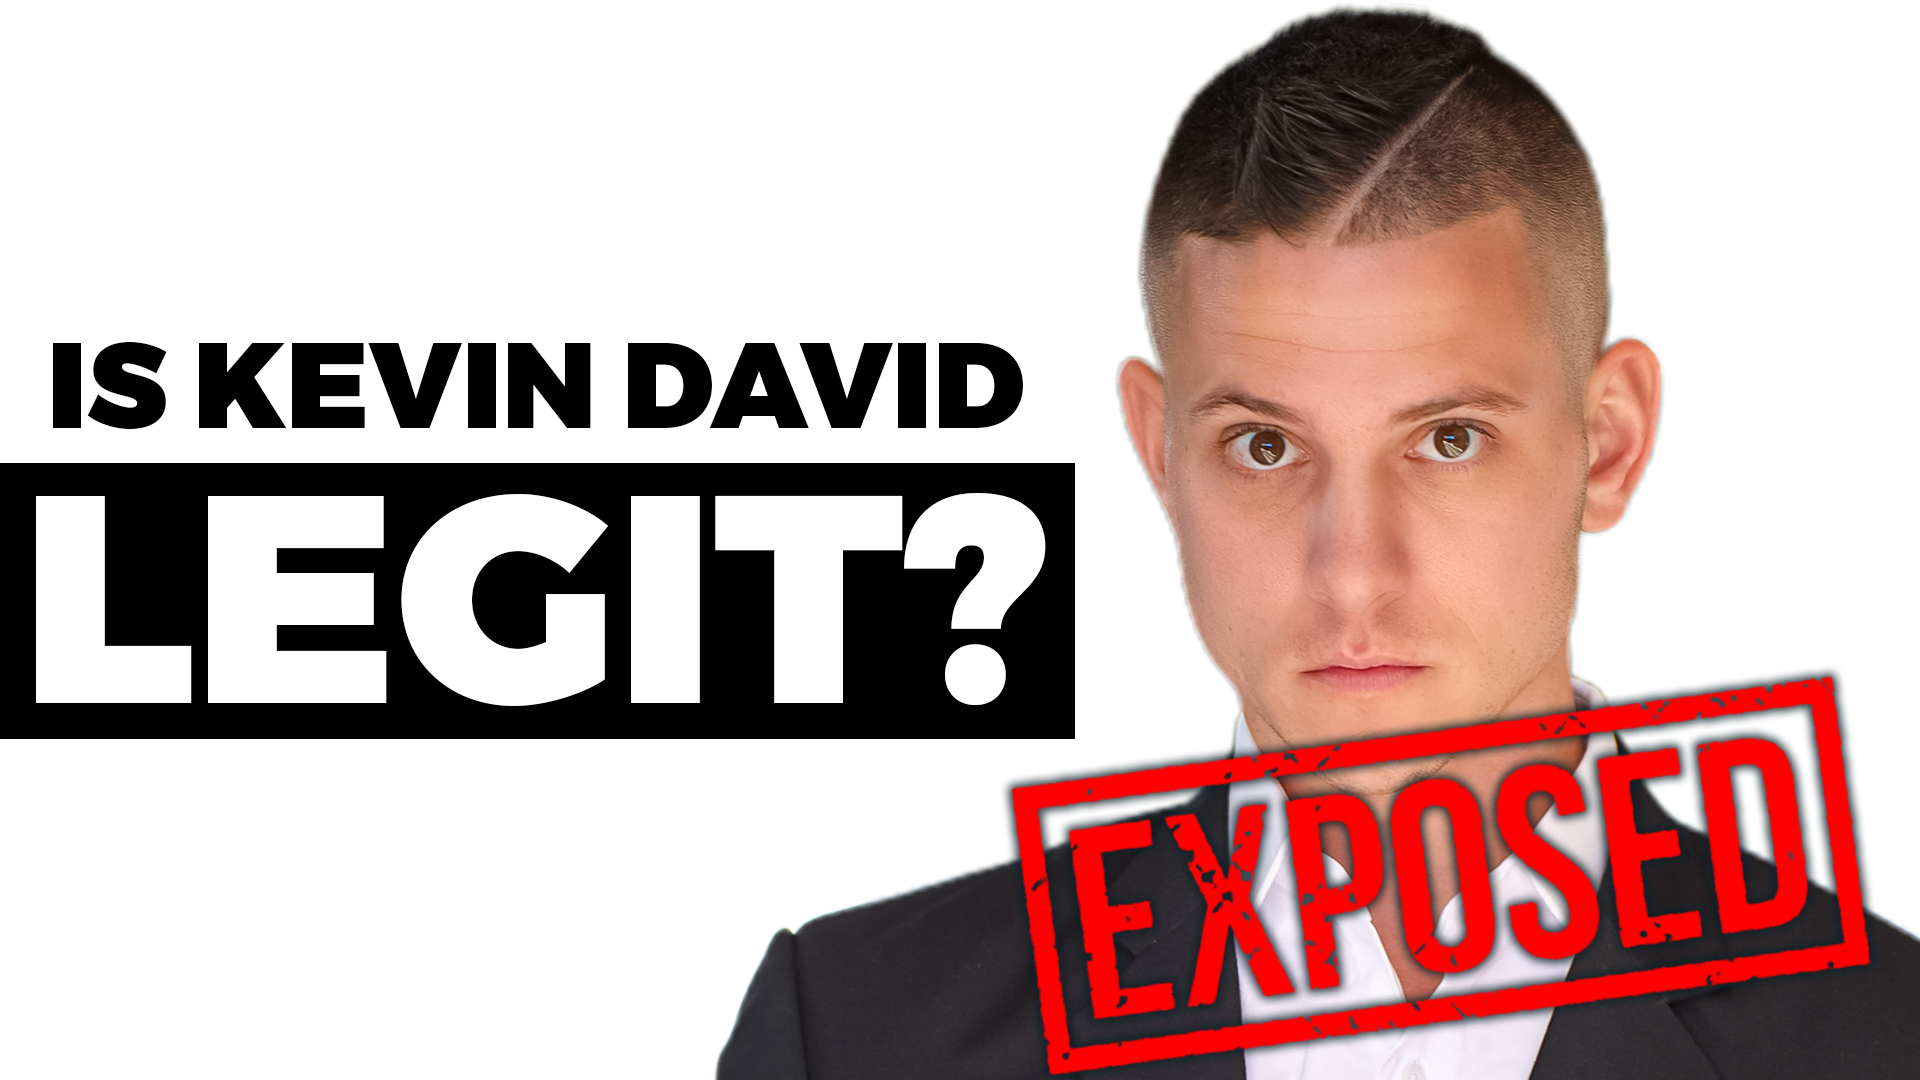 Is Renowned Multimillion Dollar Online Business Owner, Kevin David a Scam or Legit?